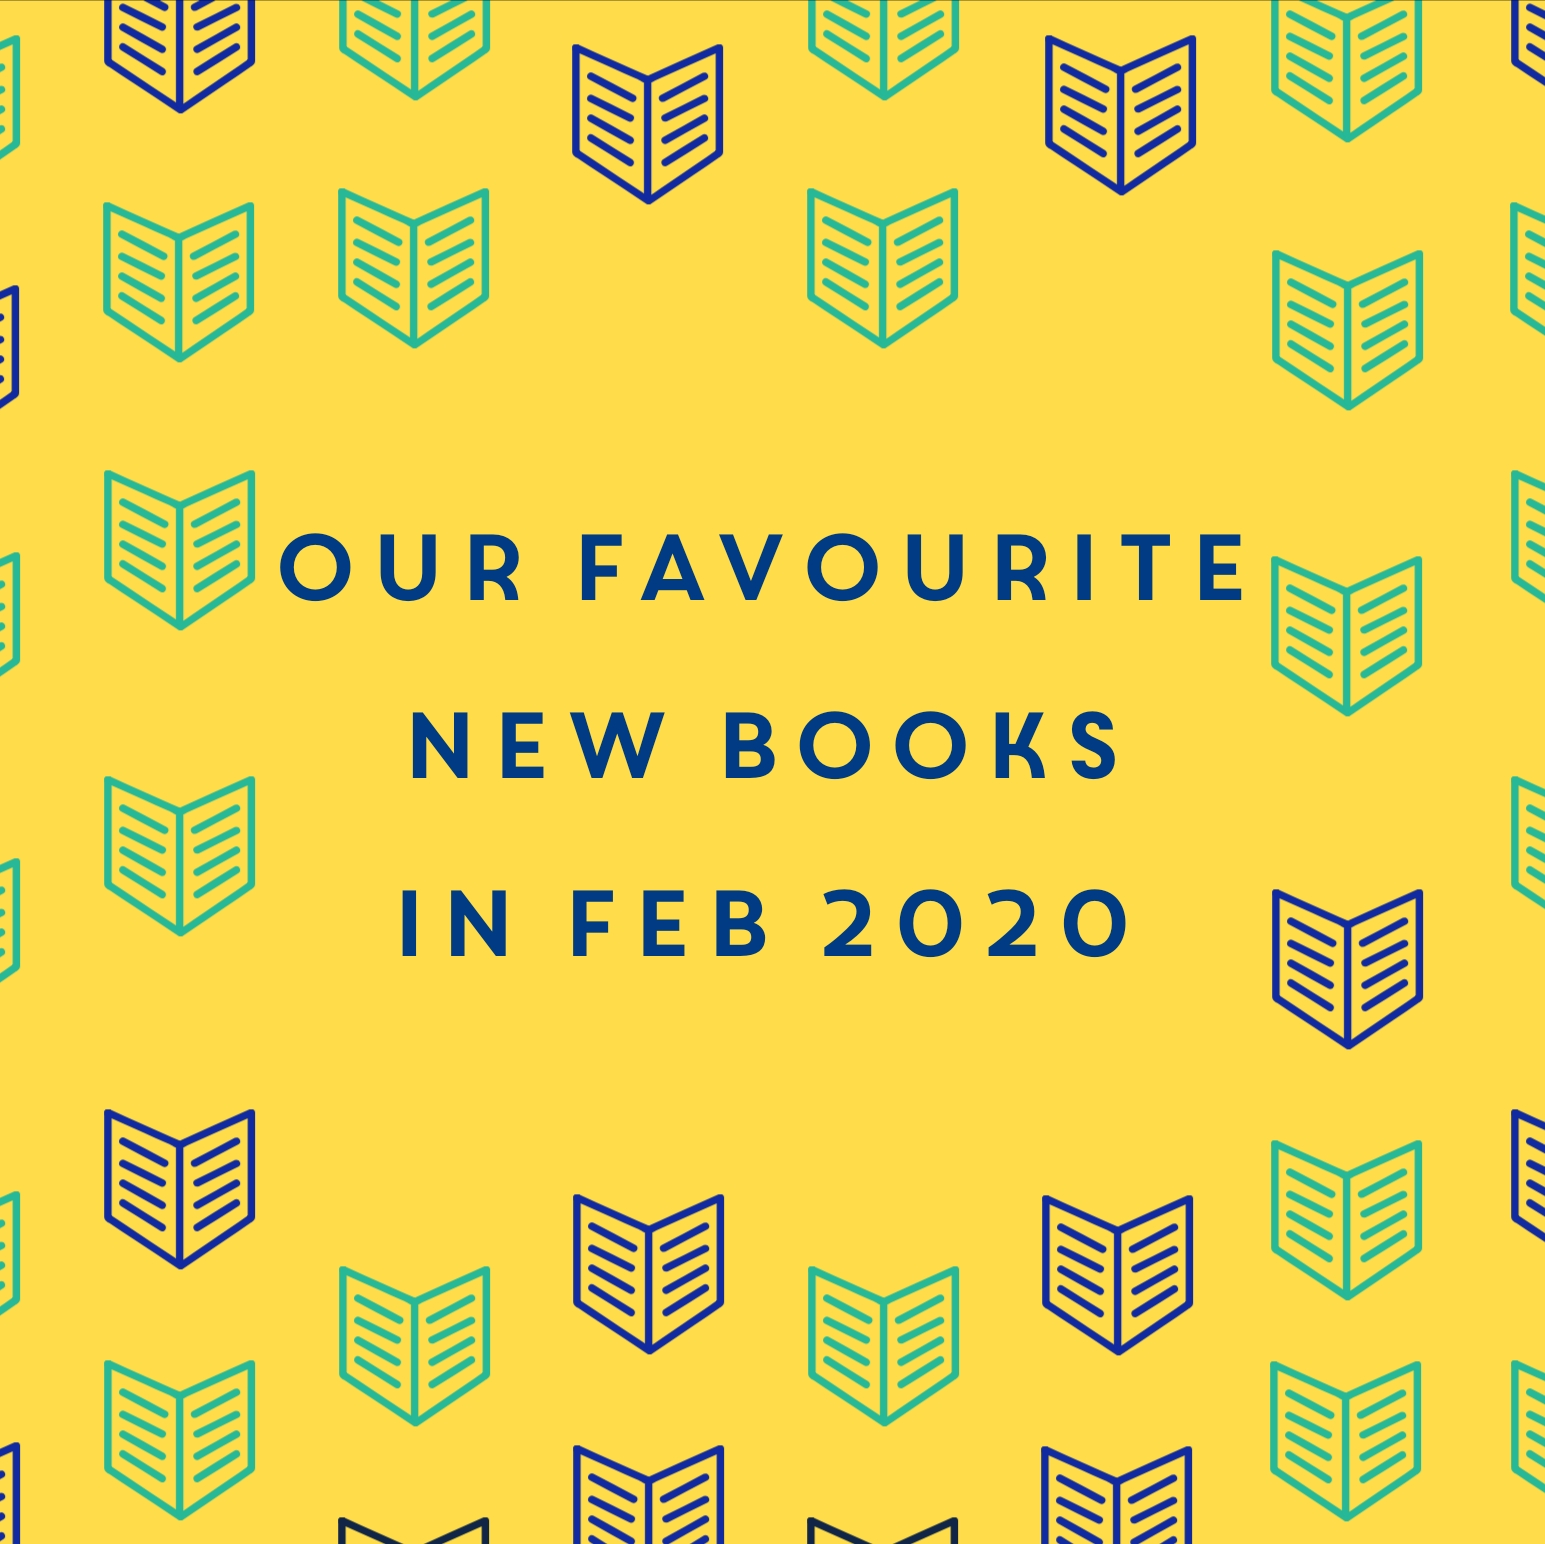 Our favourite new books in February 2020